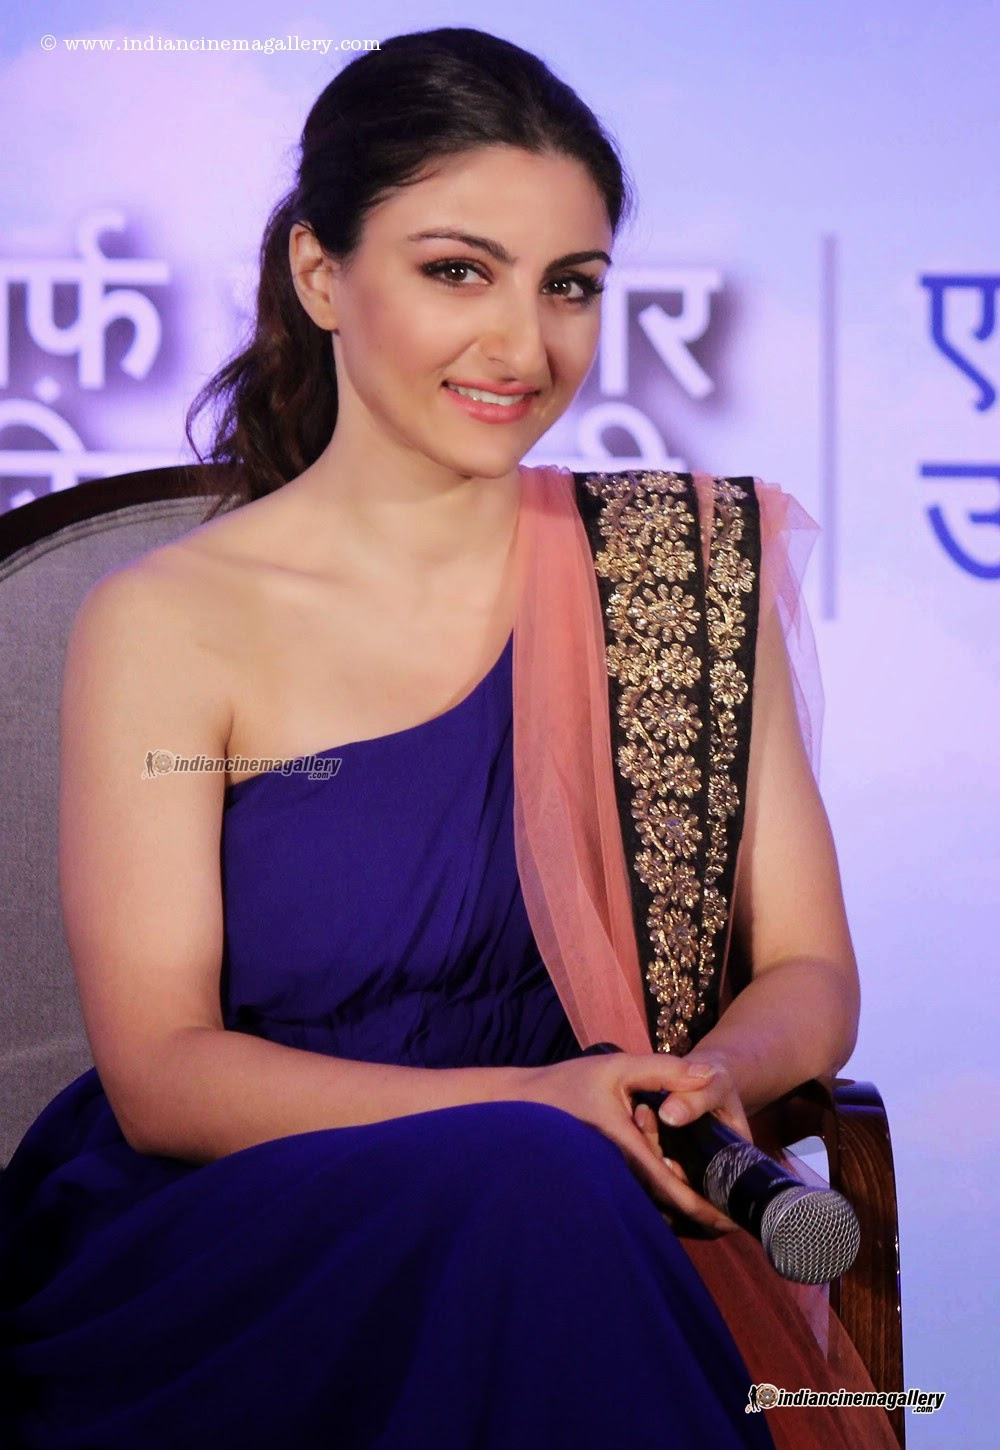 Soha Ali Khan Stunning Gorgeous Hot Stills May 2014  Hot Celebs-3474